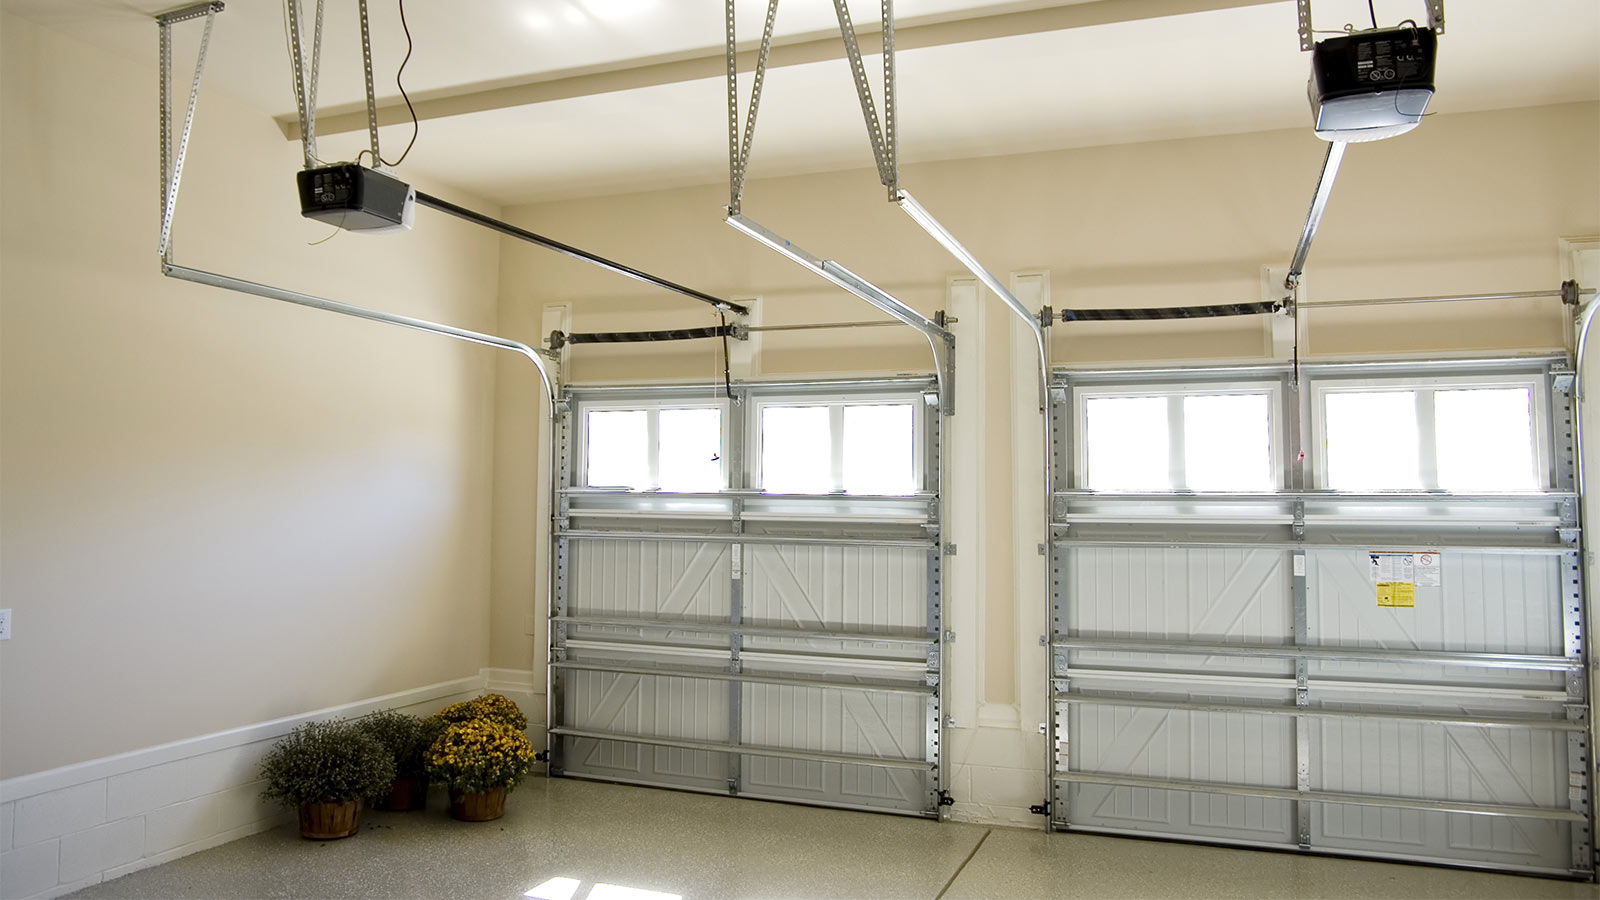 Sectional Garage Doors from Security Gates East London suppliers.